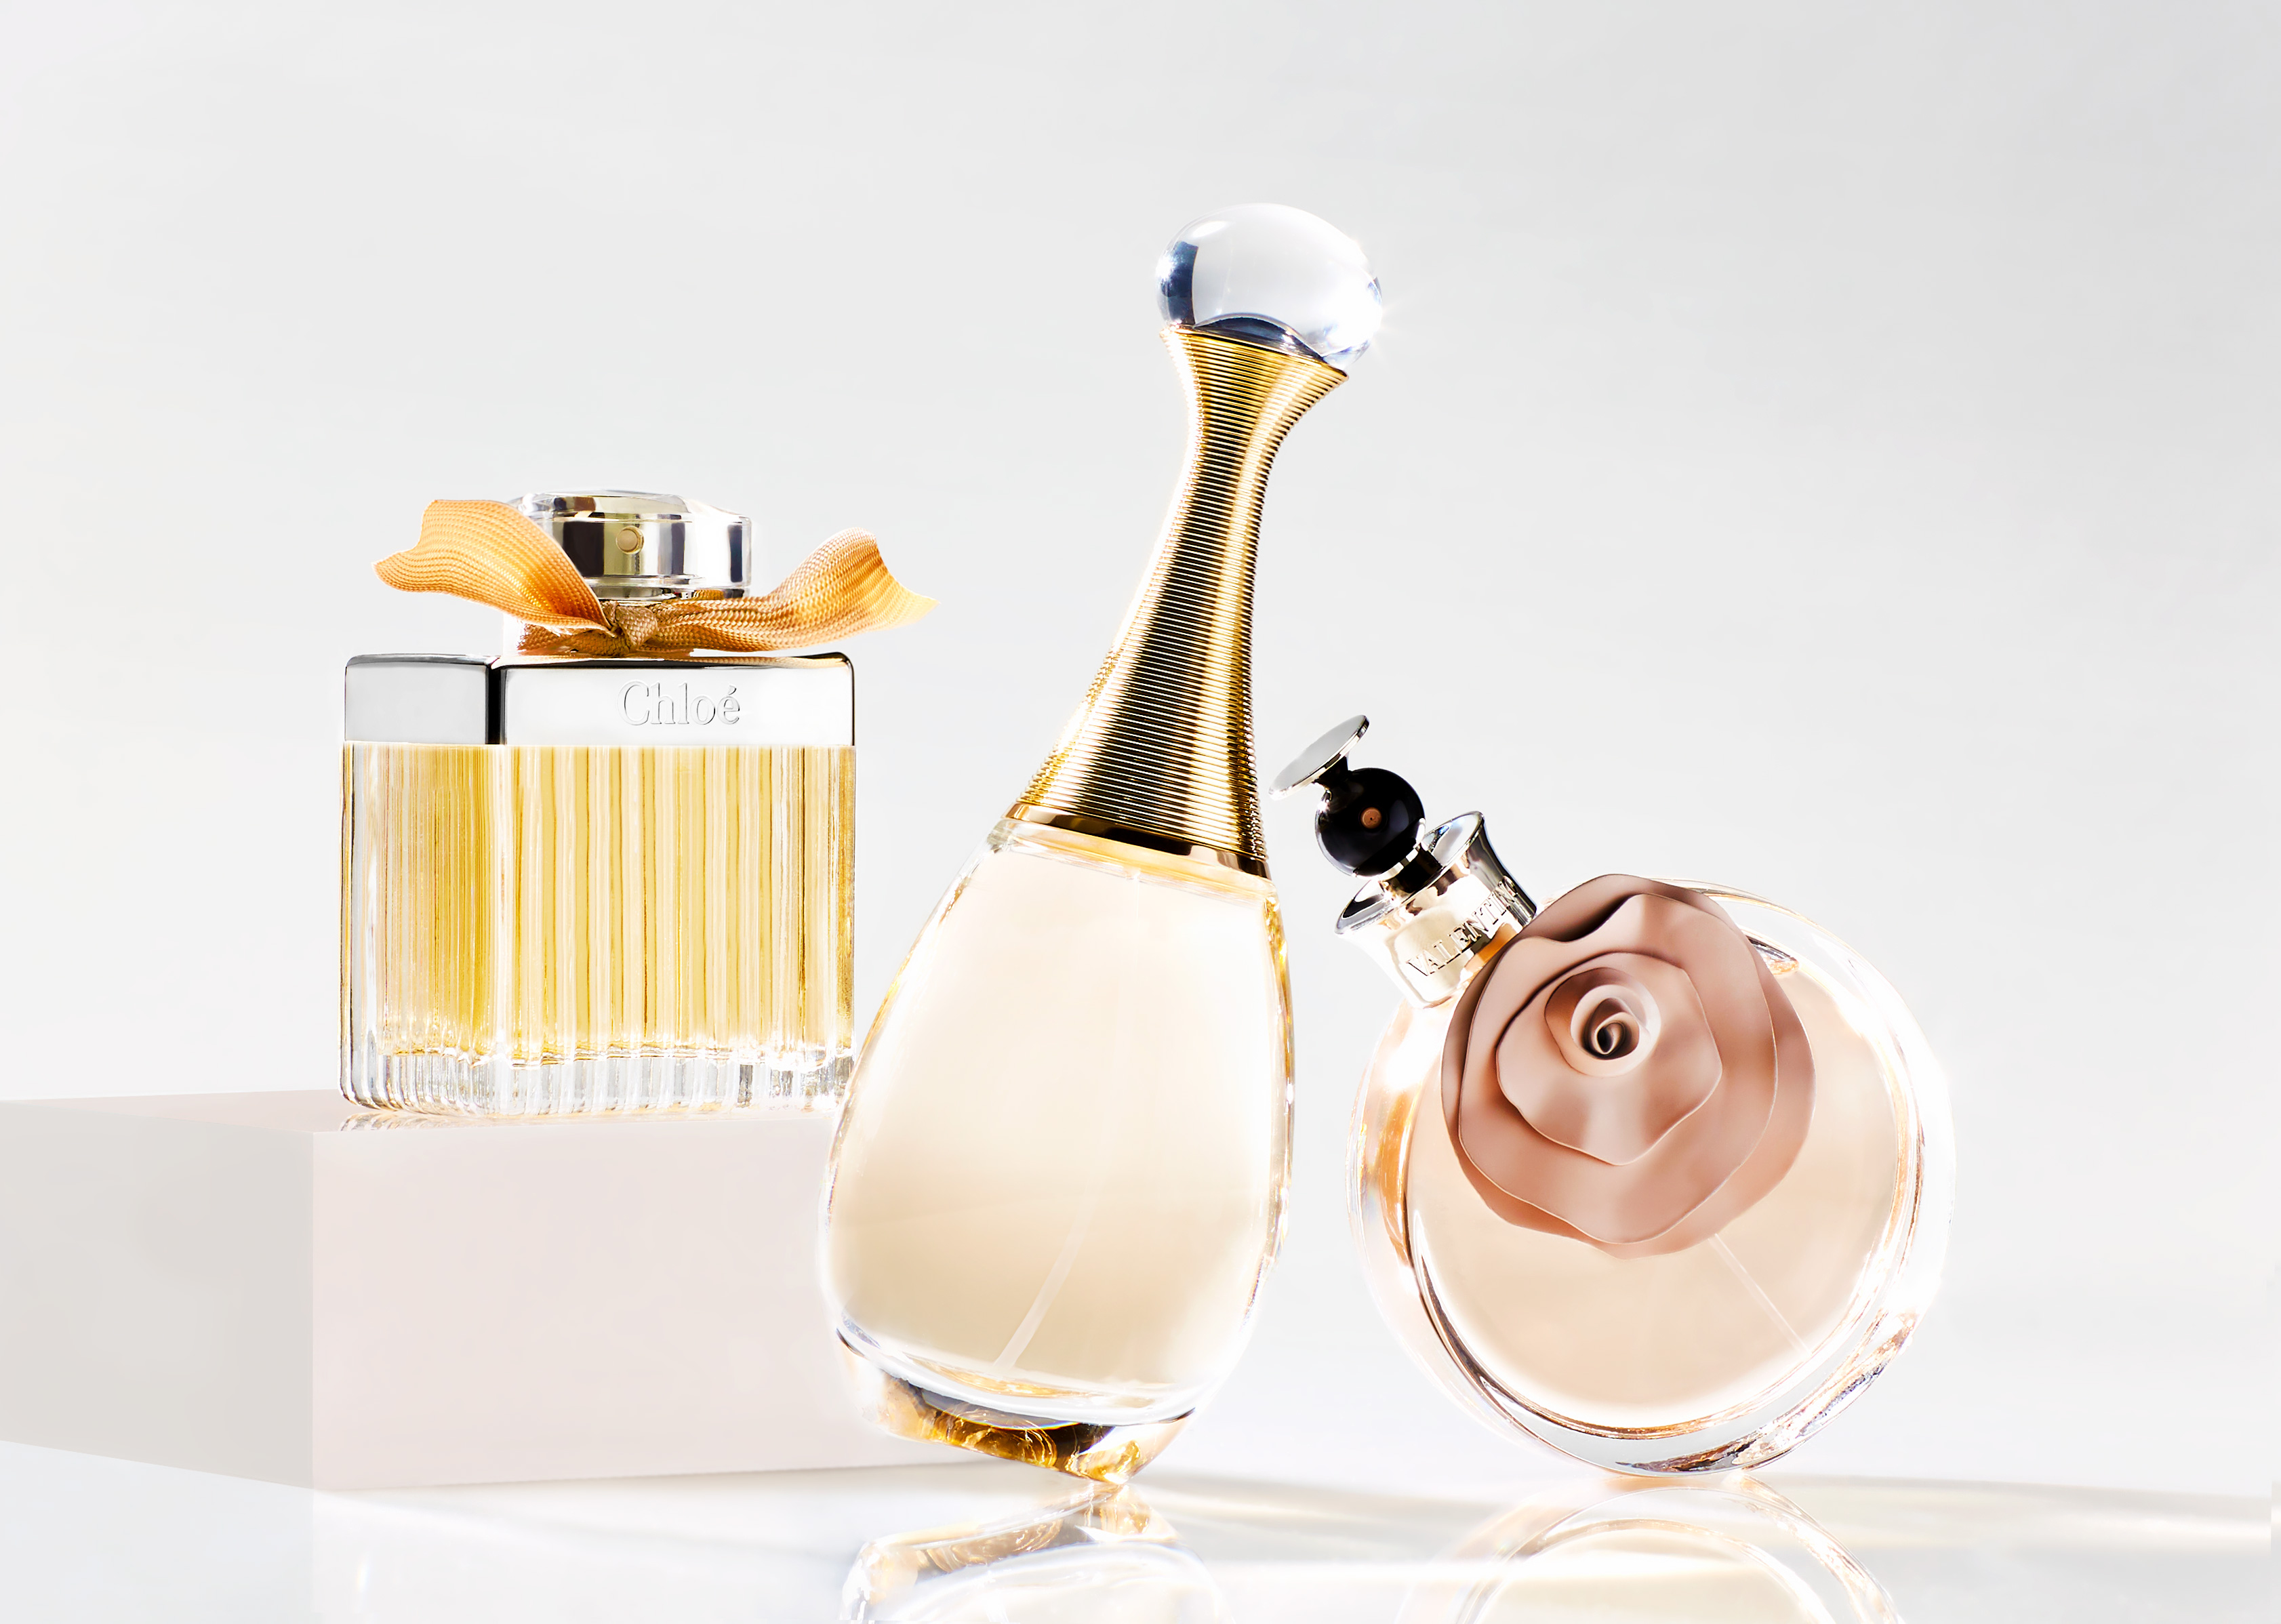 Chloe2-BeautyFragrance-LD-FY21_SELECT